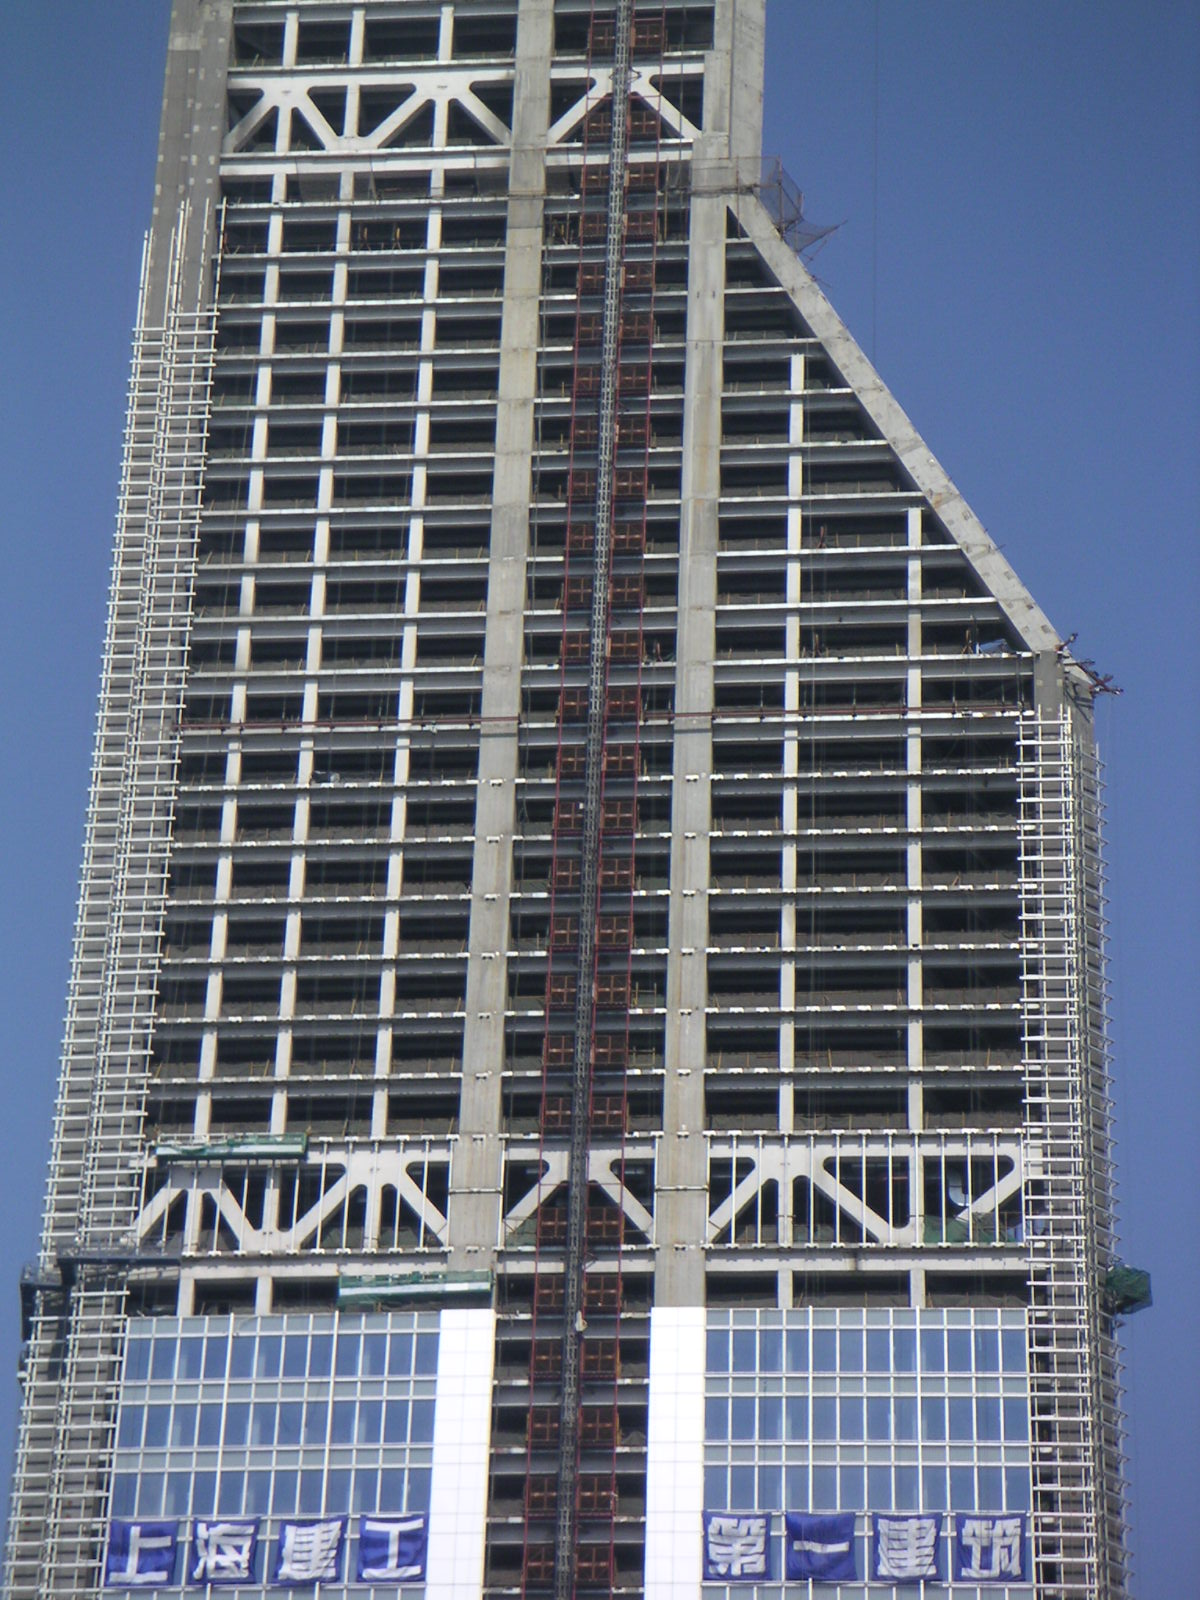 A 60-story building under construction in Shanghai. The truss sections (made of triangular struts) will house mechanical floors.